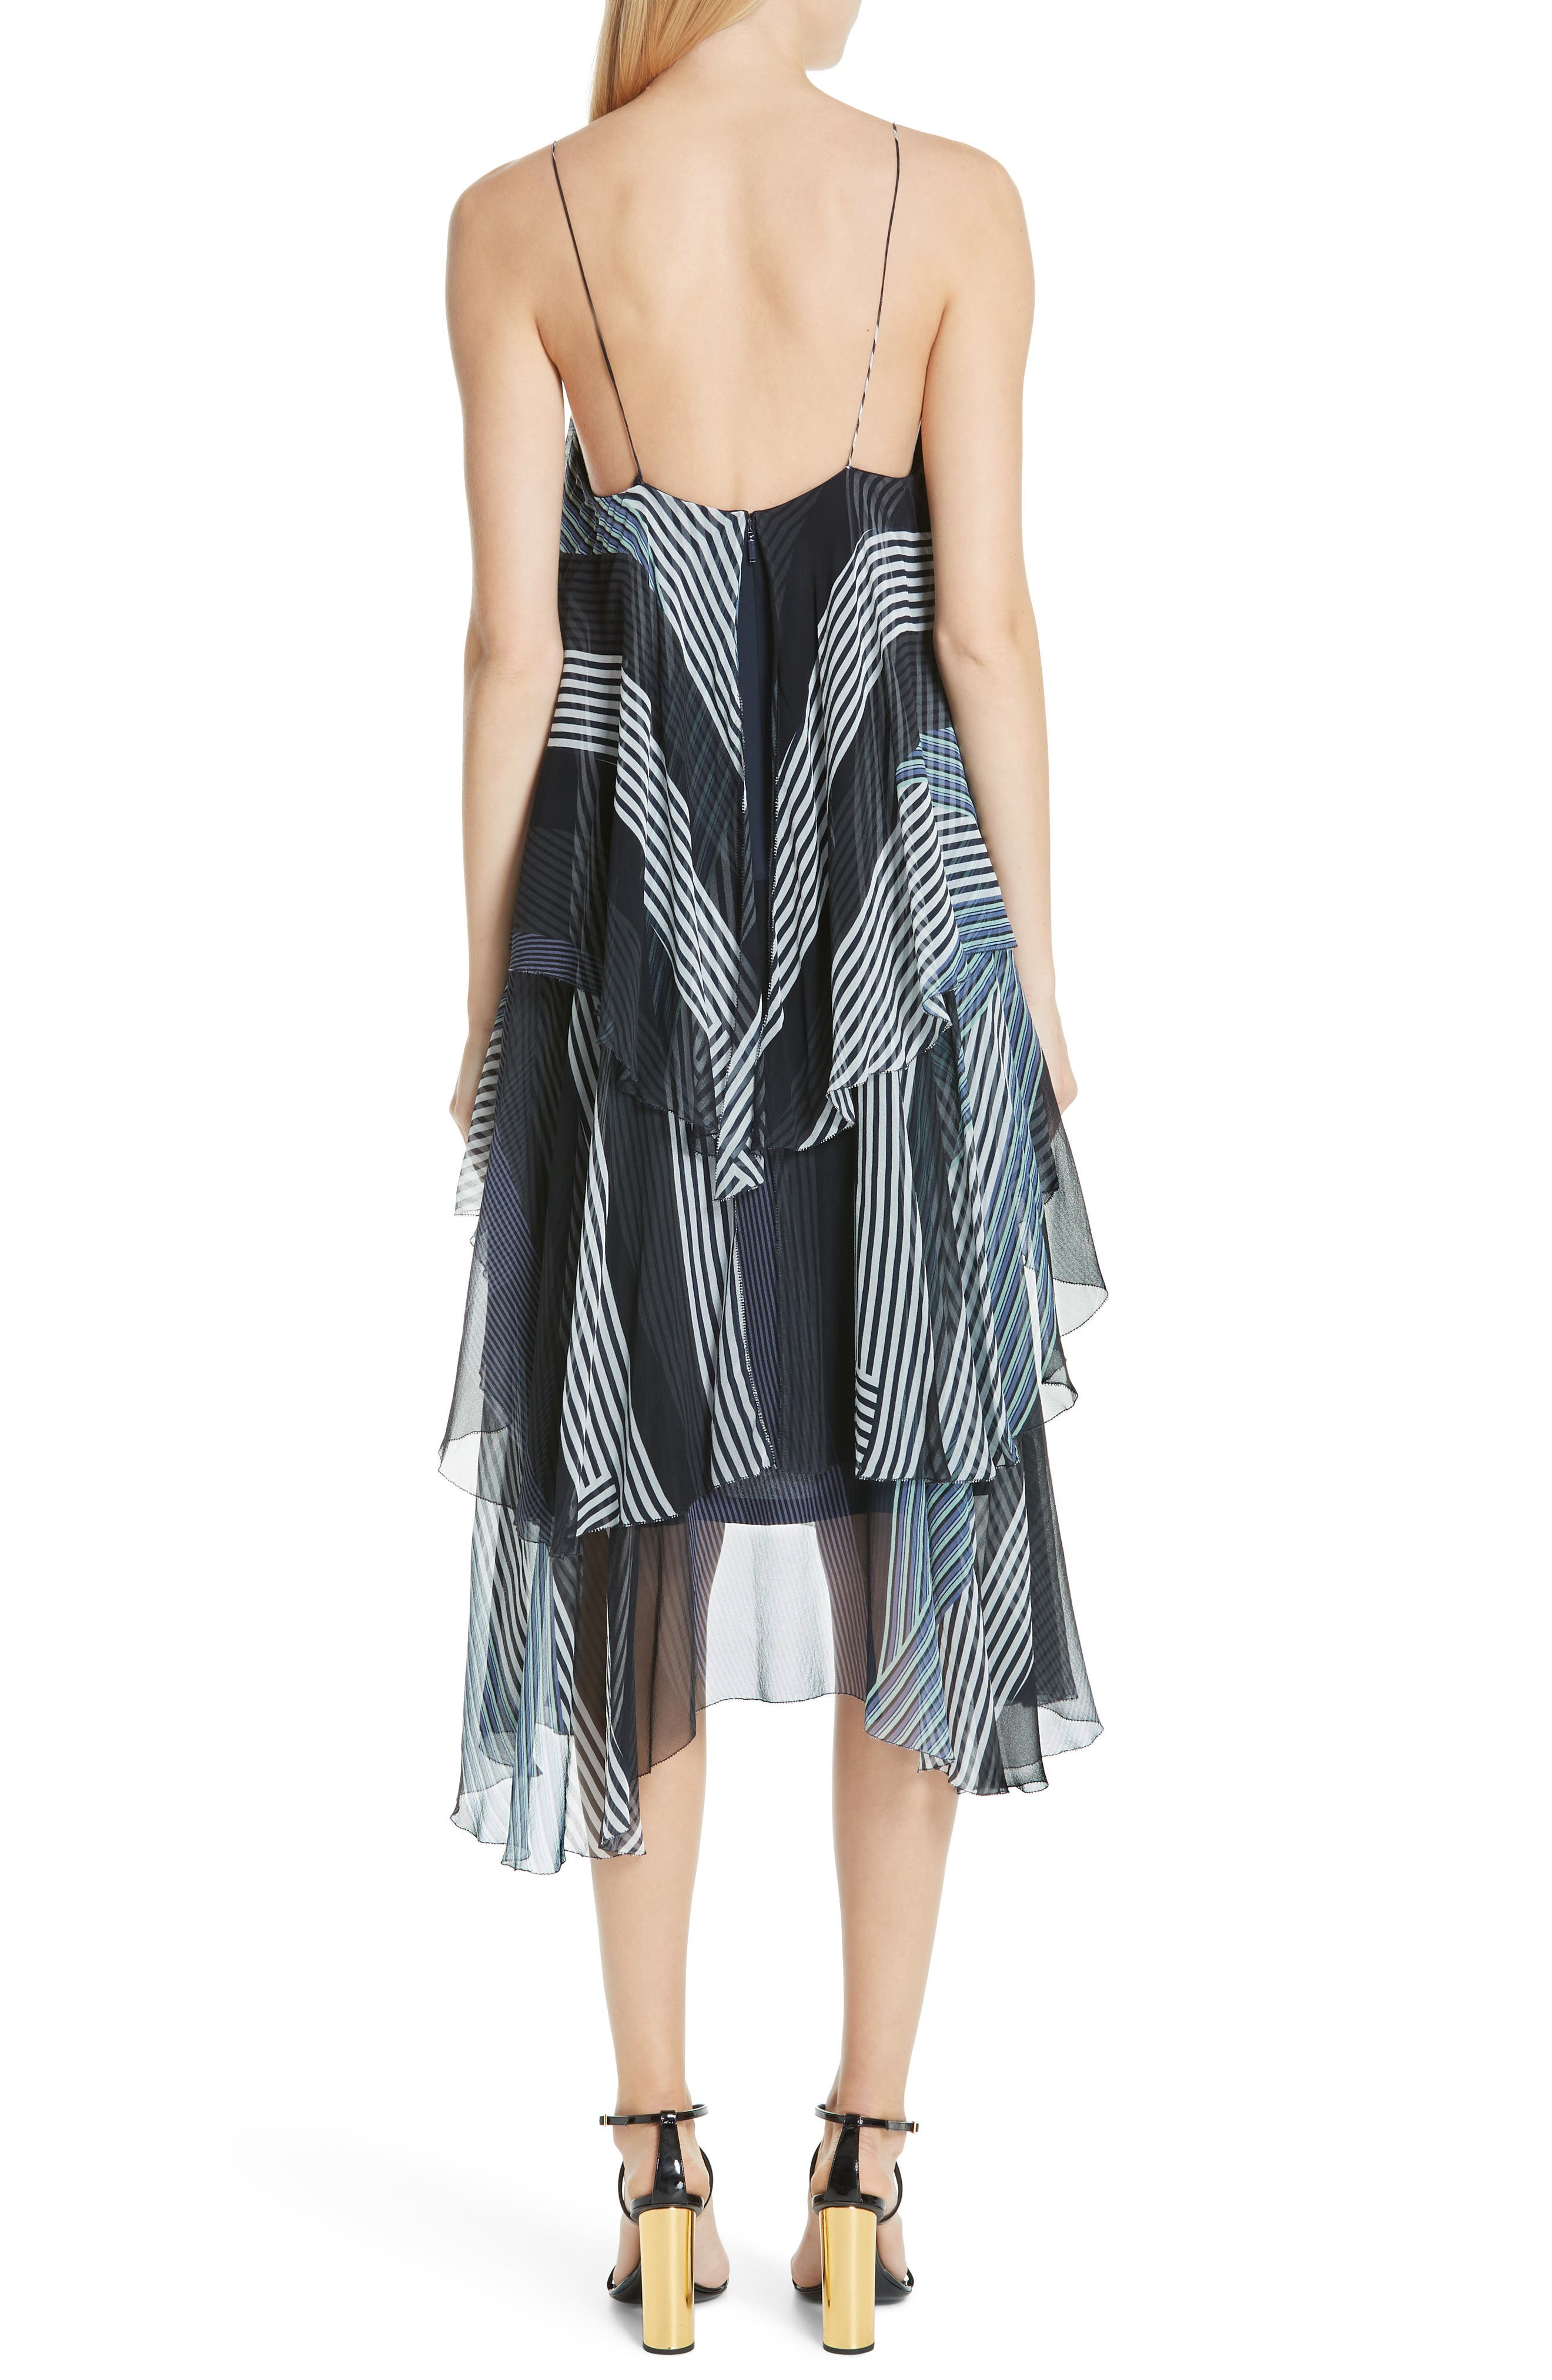 JASON WU, Collage Stripe Silk Tiered Dress, Alternate thumbnail 2, color, DARK NAVY MULTI